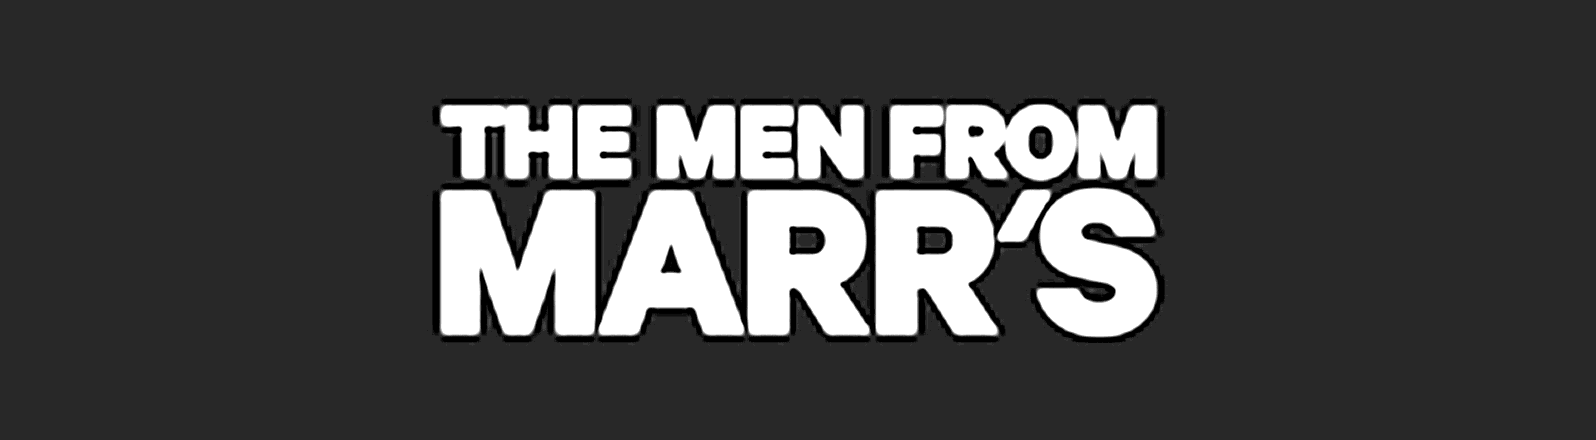 Cloudtal-The-Men-From-Marrs-Logo